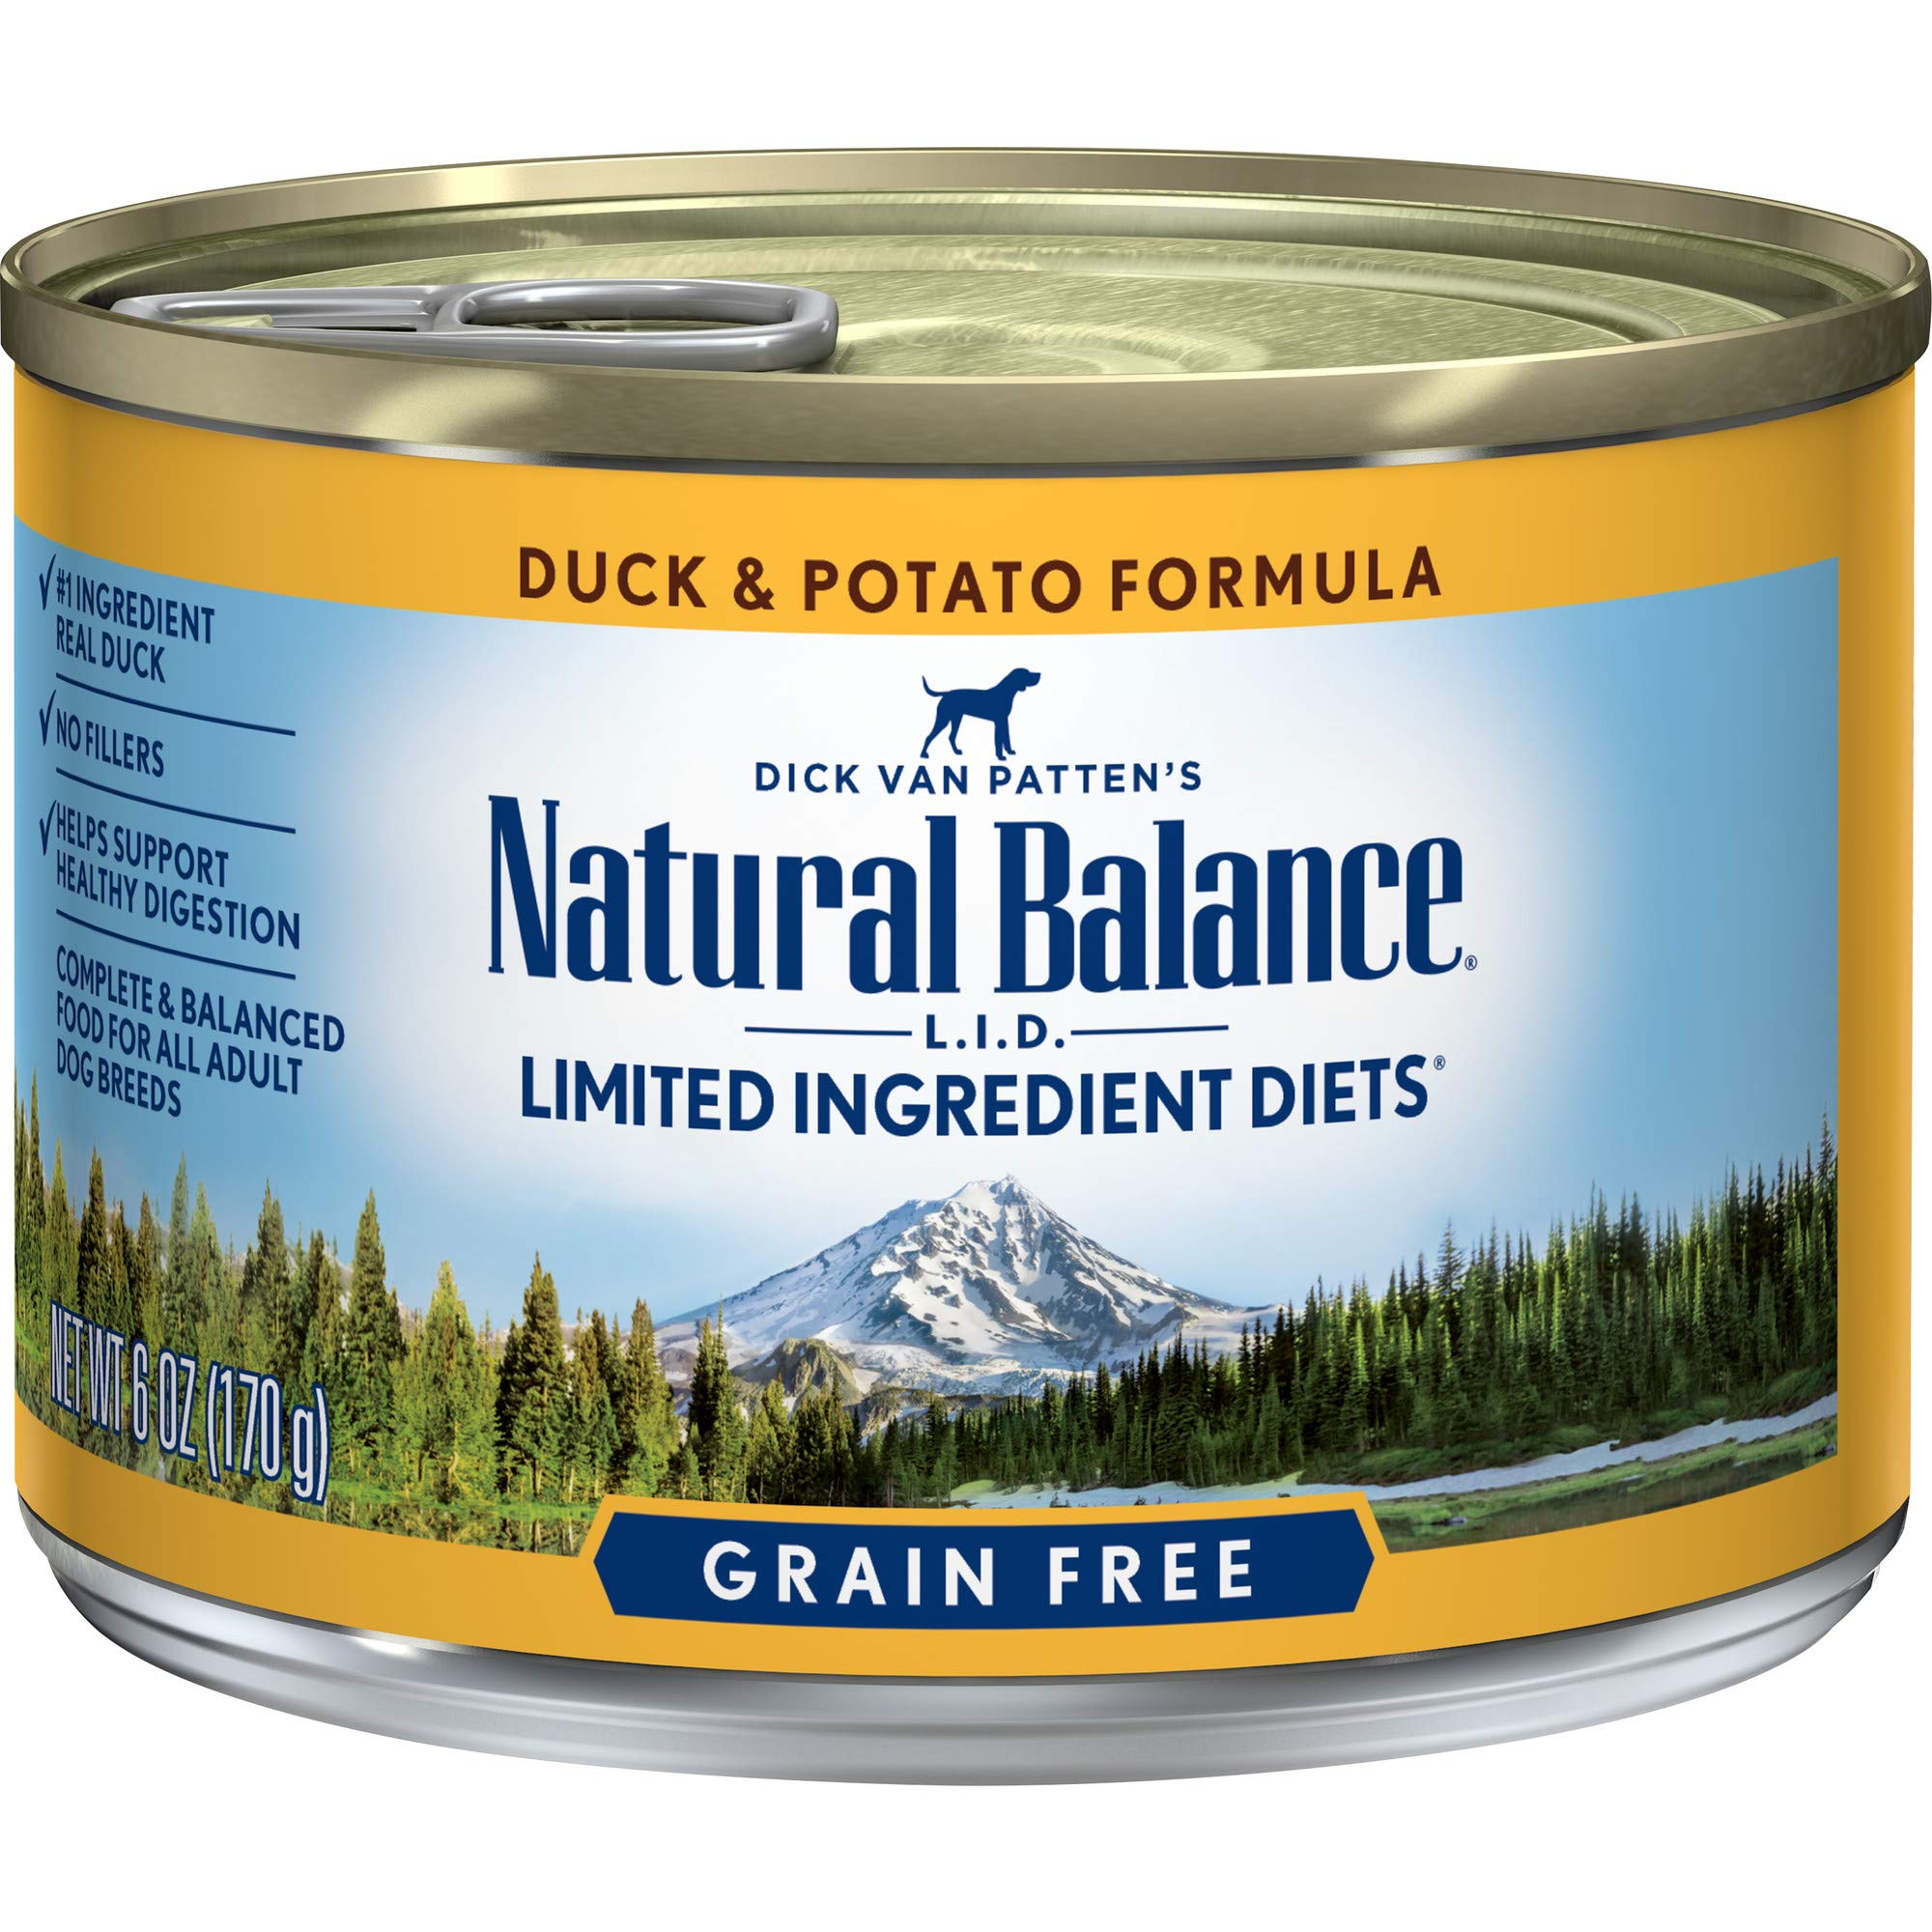 Natural Balance L.I.D. Limited Ingredient Diets Canned Wet Dog Food, Grain Free, Duck And Potato Formula, 6-Ounce (Pack Of 12) by Natural Balance